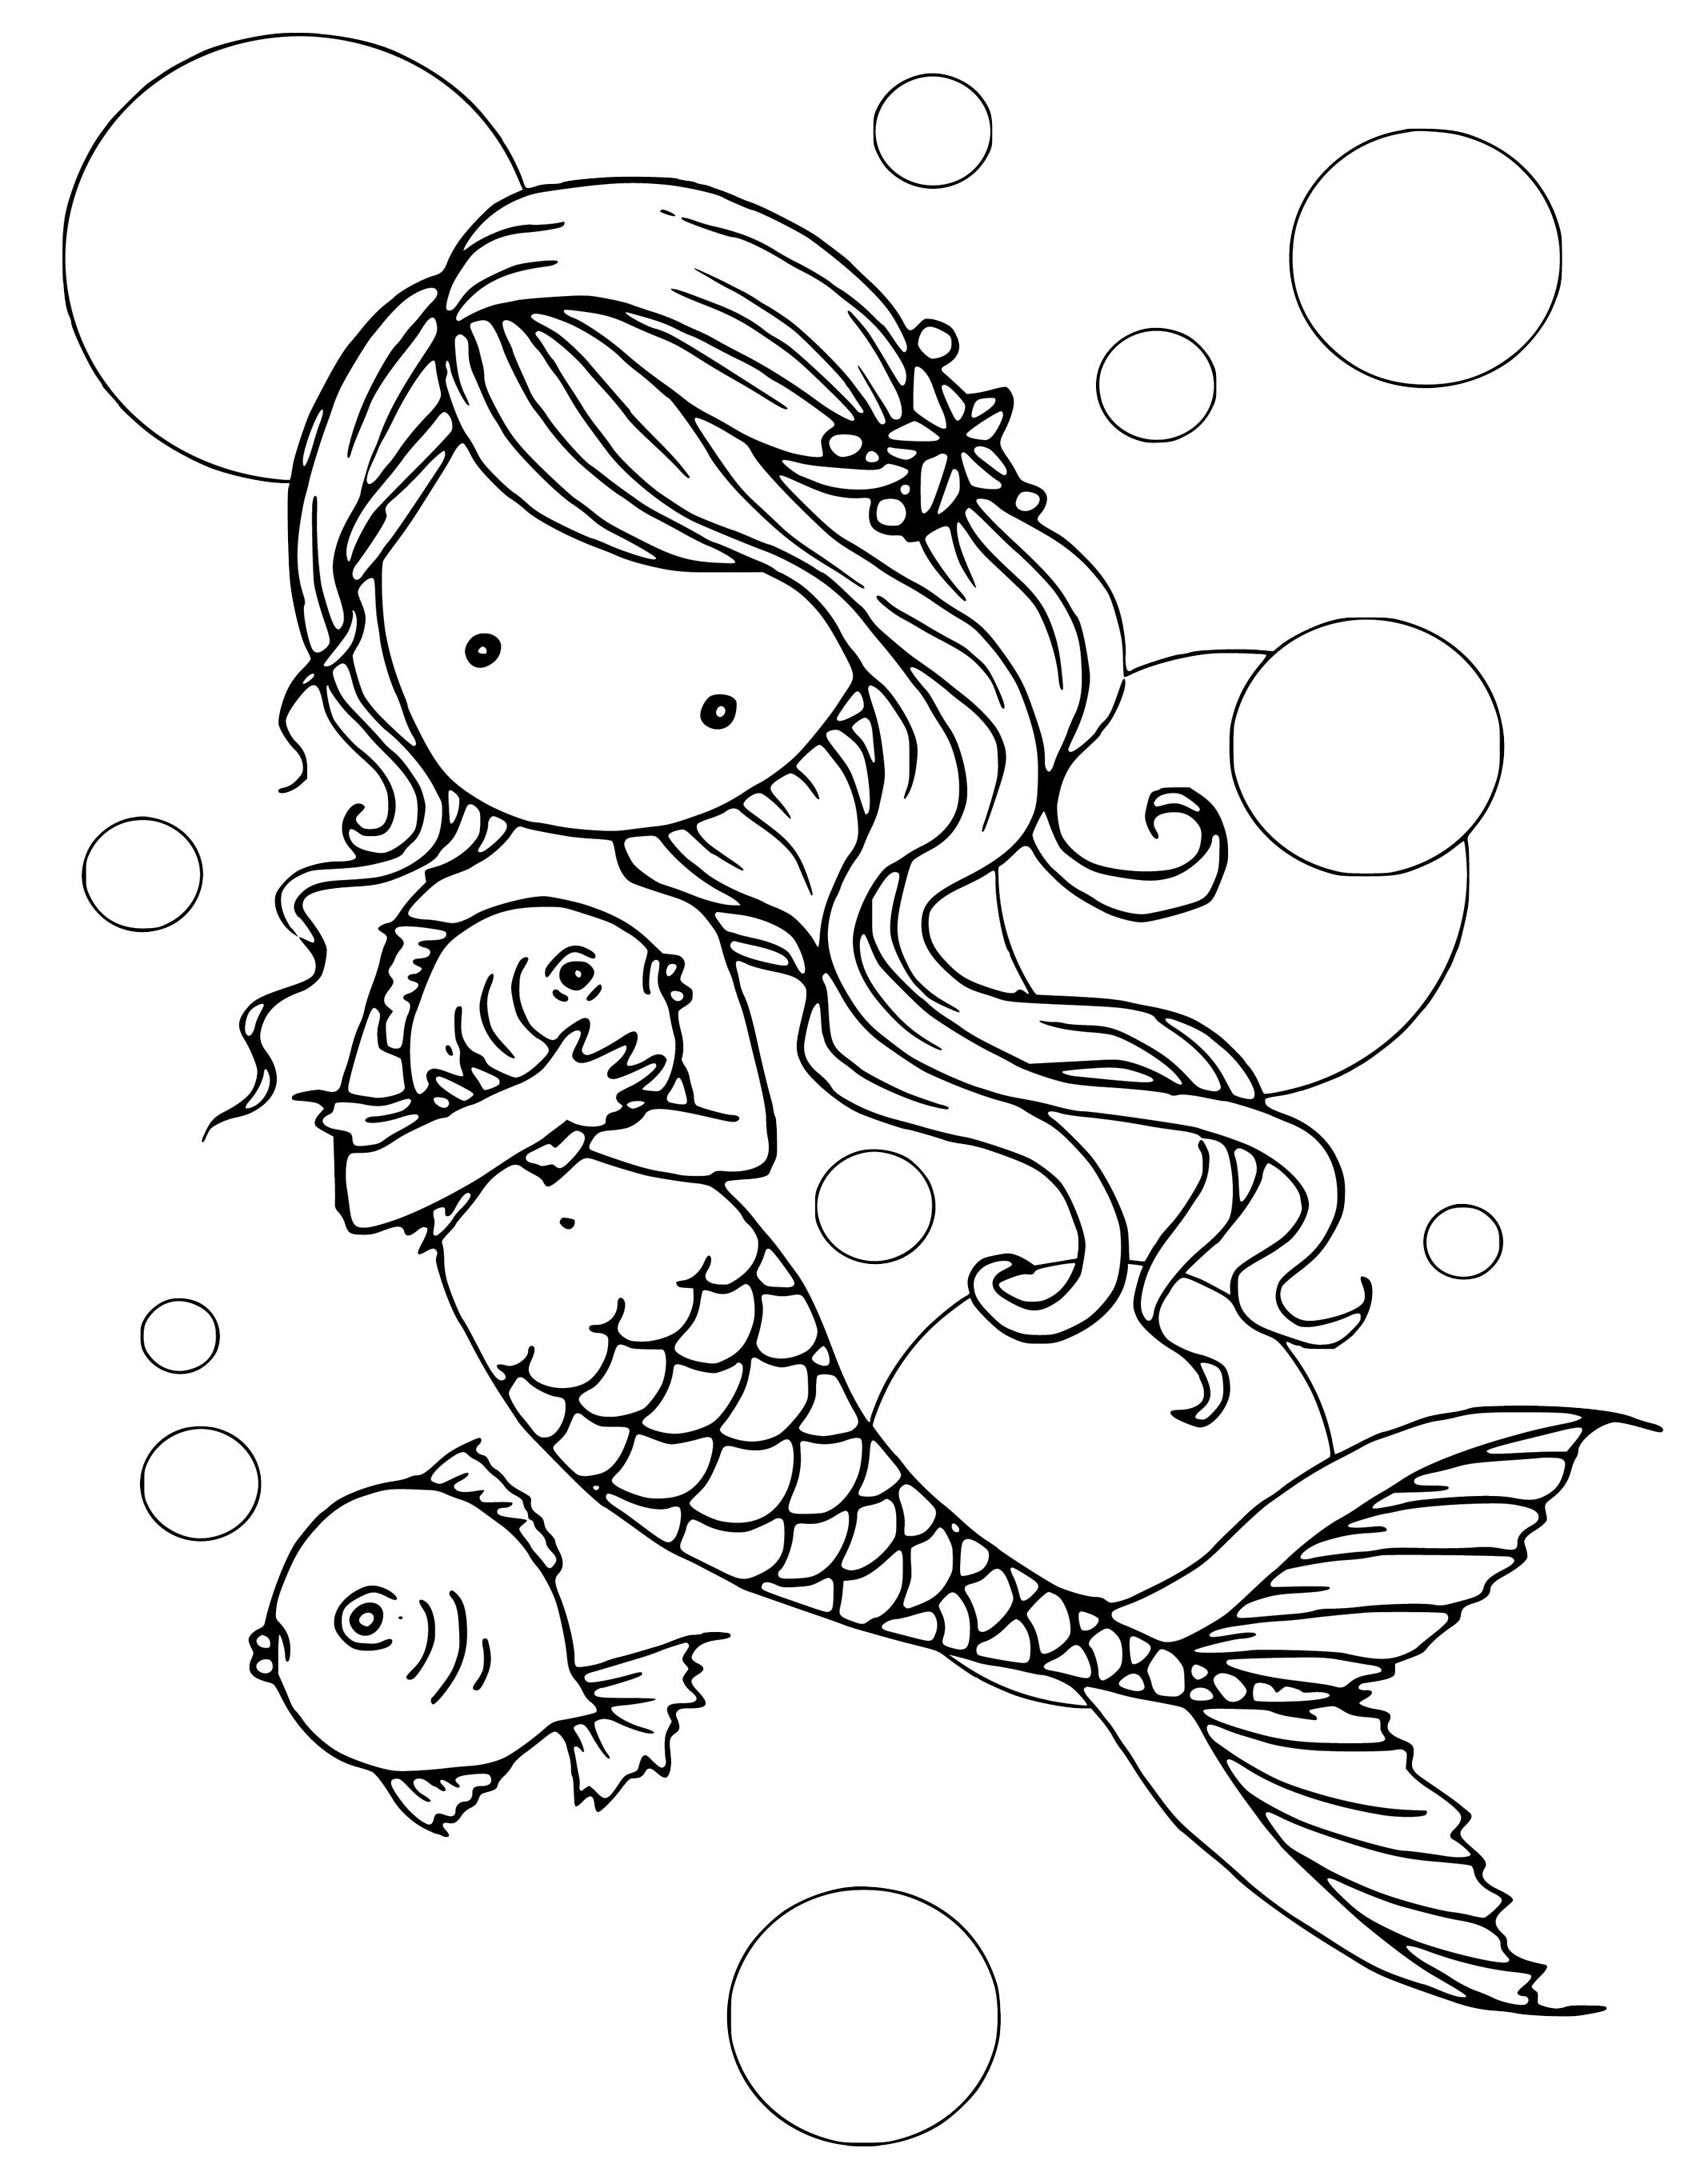 Little Mermaid Printable Coloring Pages Colorings World Mermaid Coloring Book Mermaid Coloring Mermaid Coloring Pages